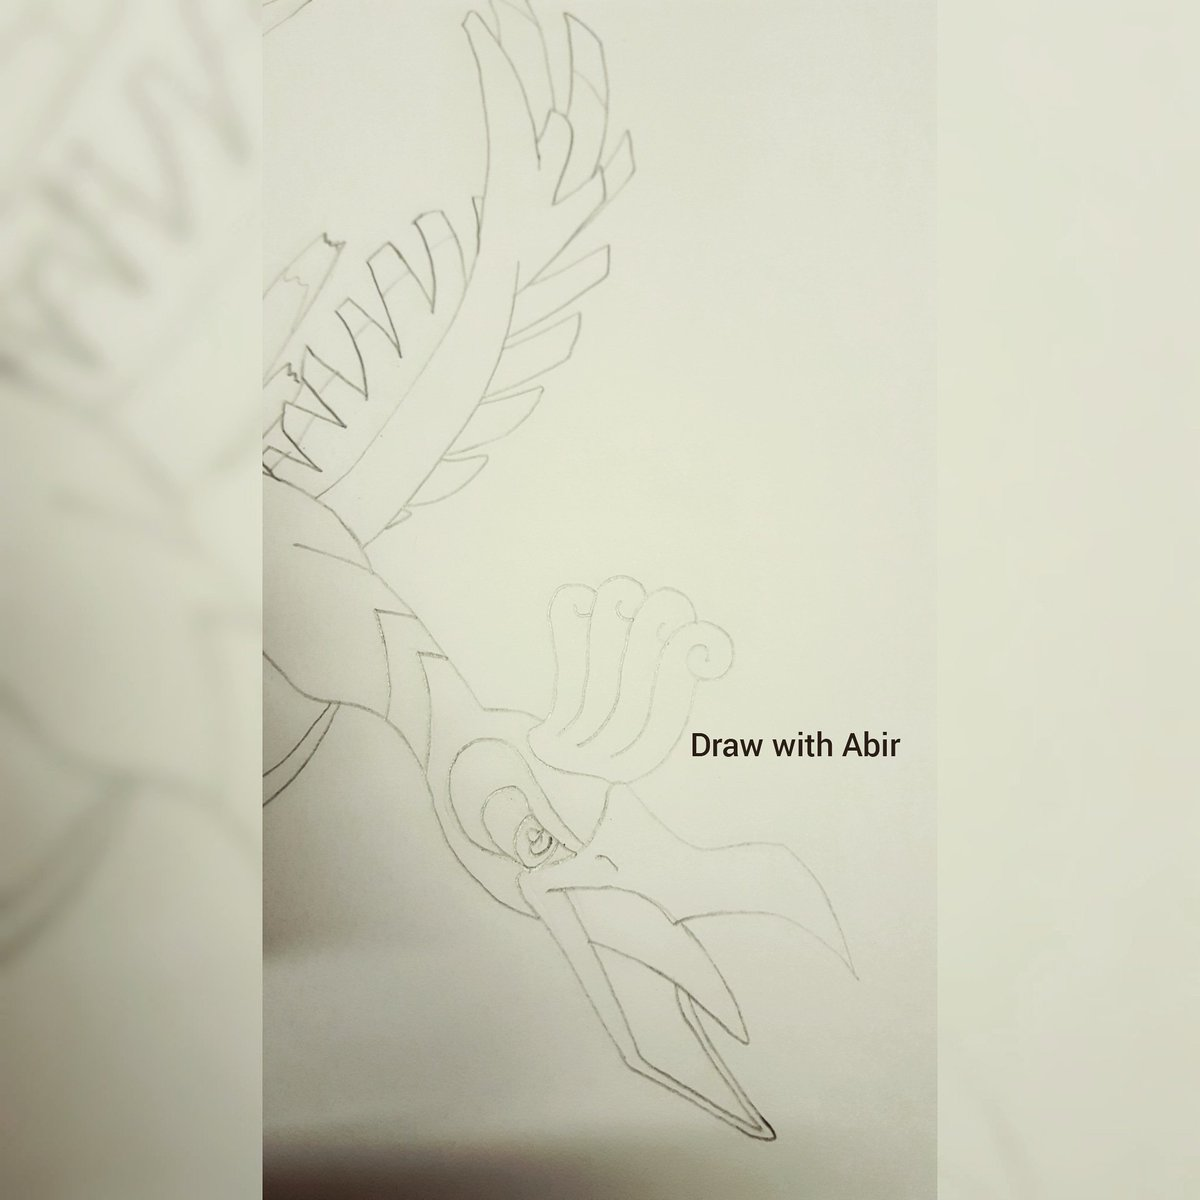 Pokemon ho oh drawing video will be available soon on my youtube